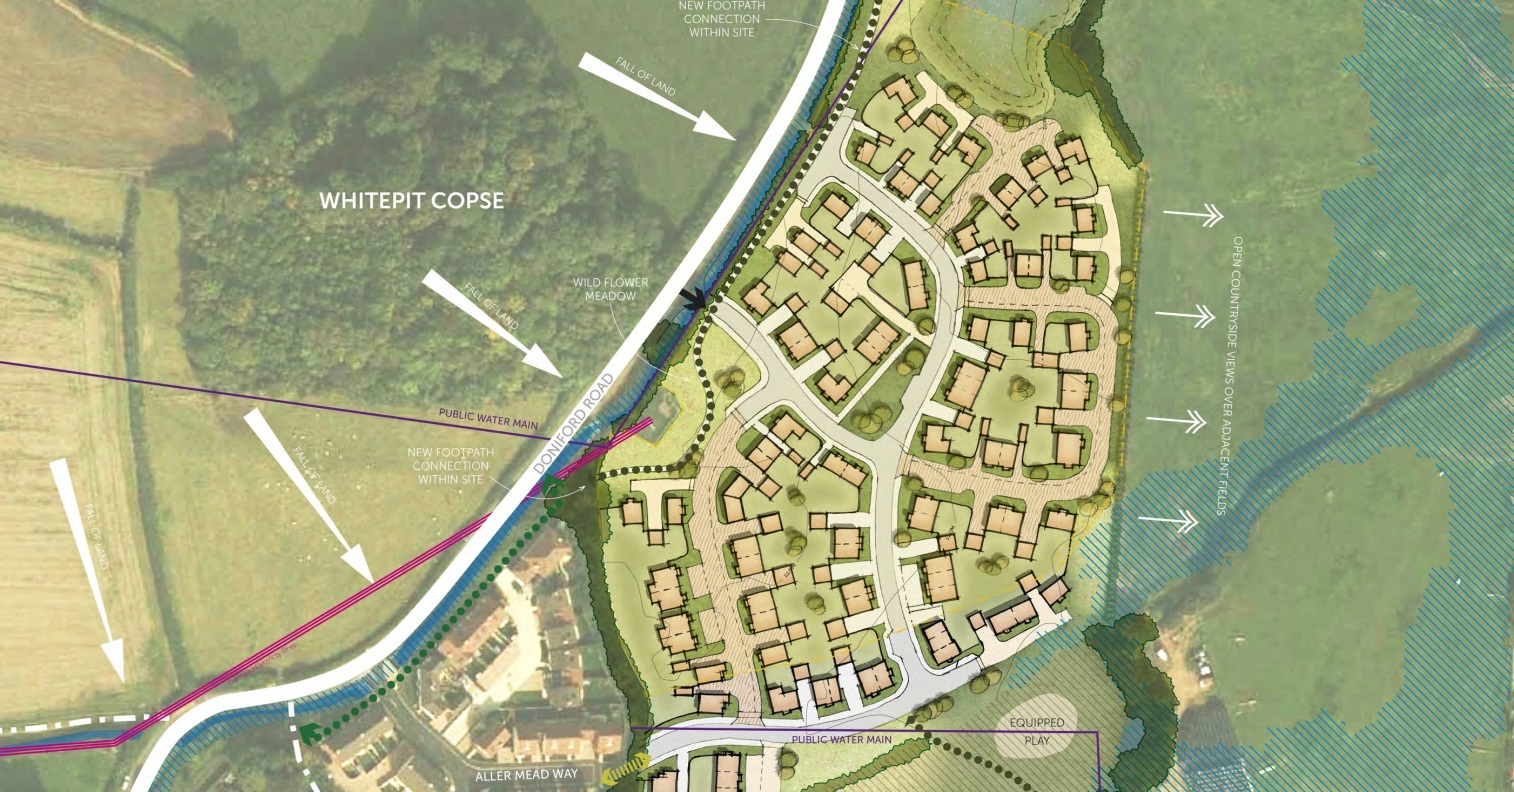 APPROVED: A plan for 90 homes for Williton has been given the initial green light